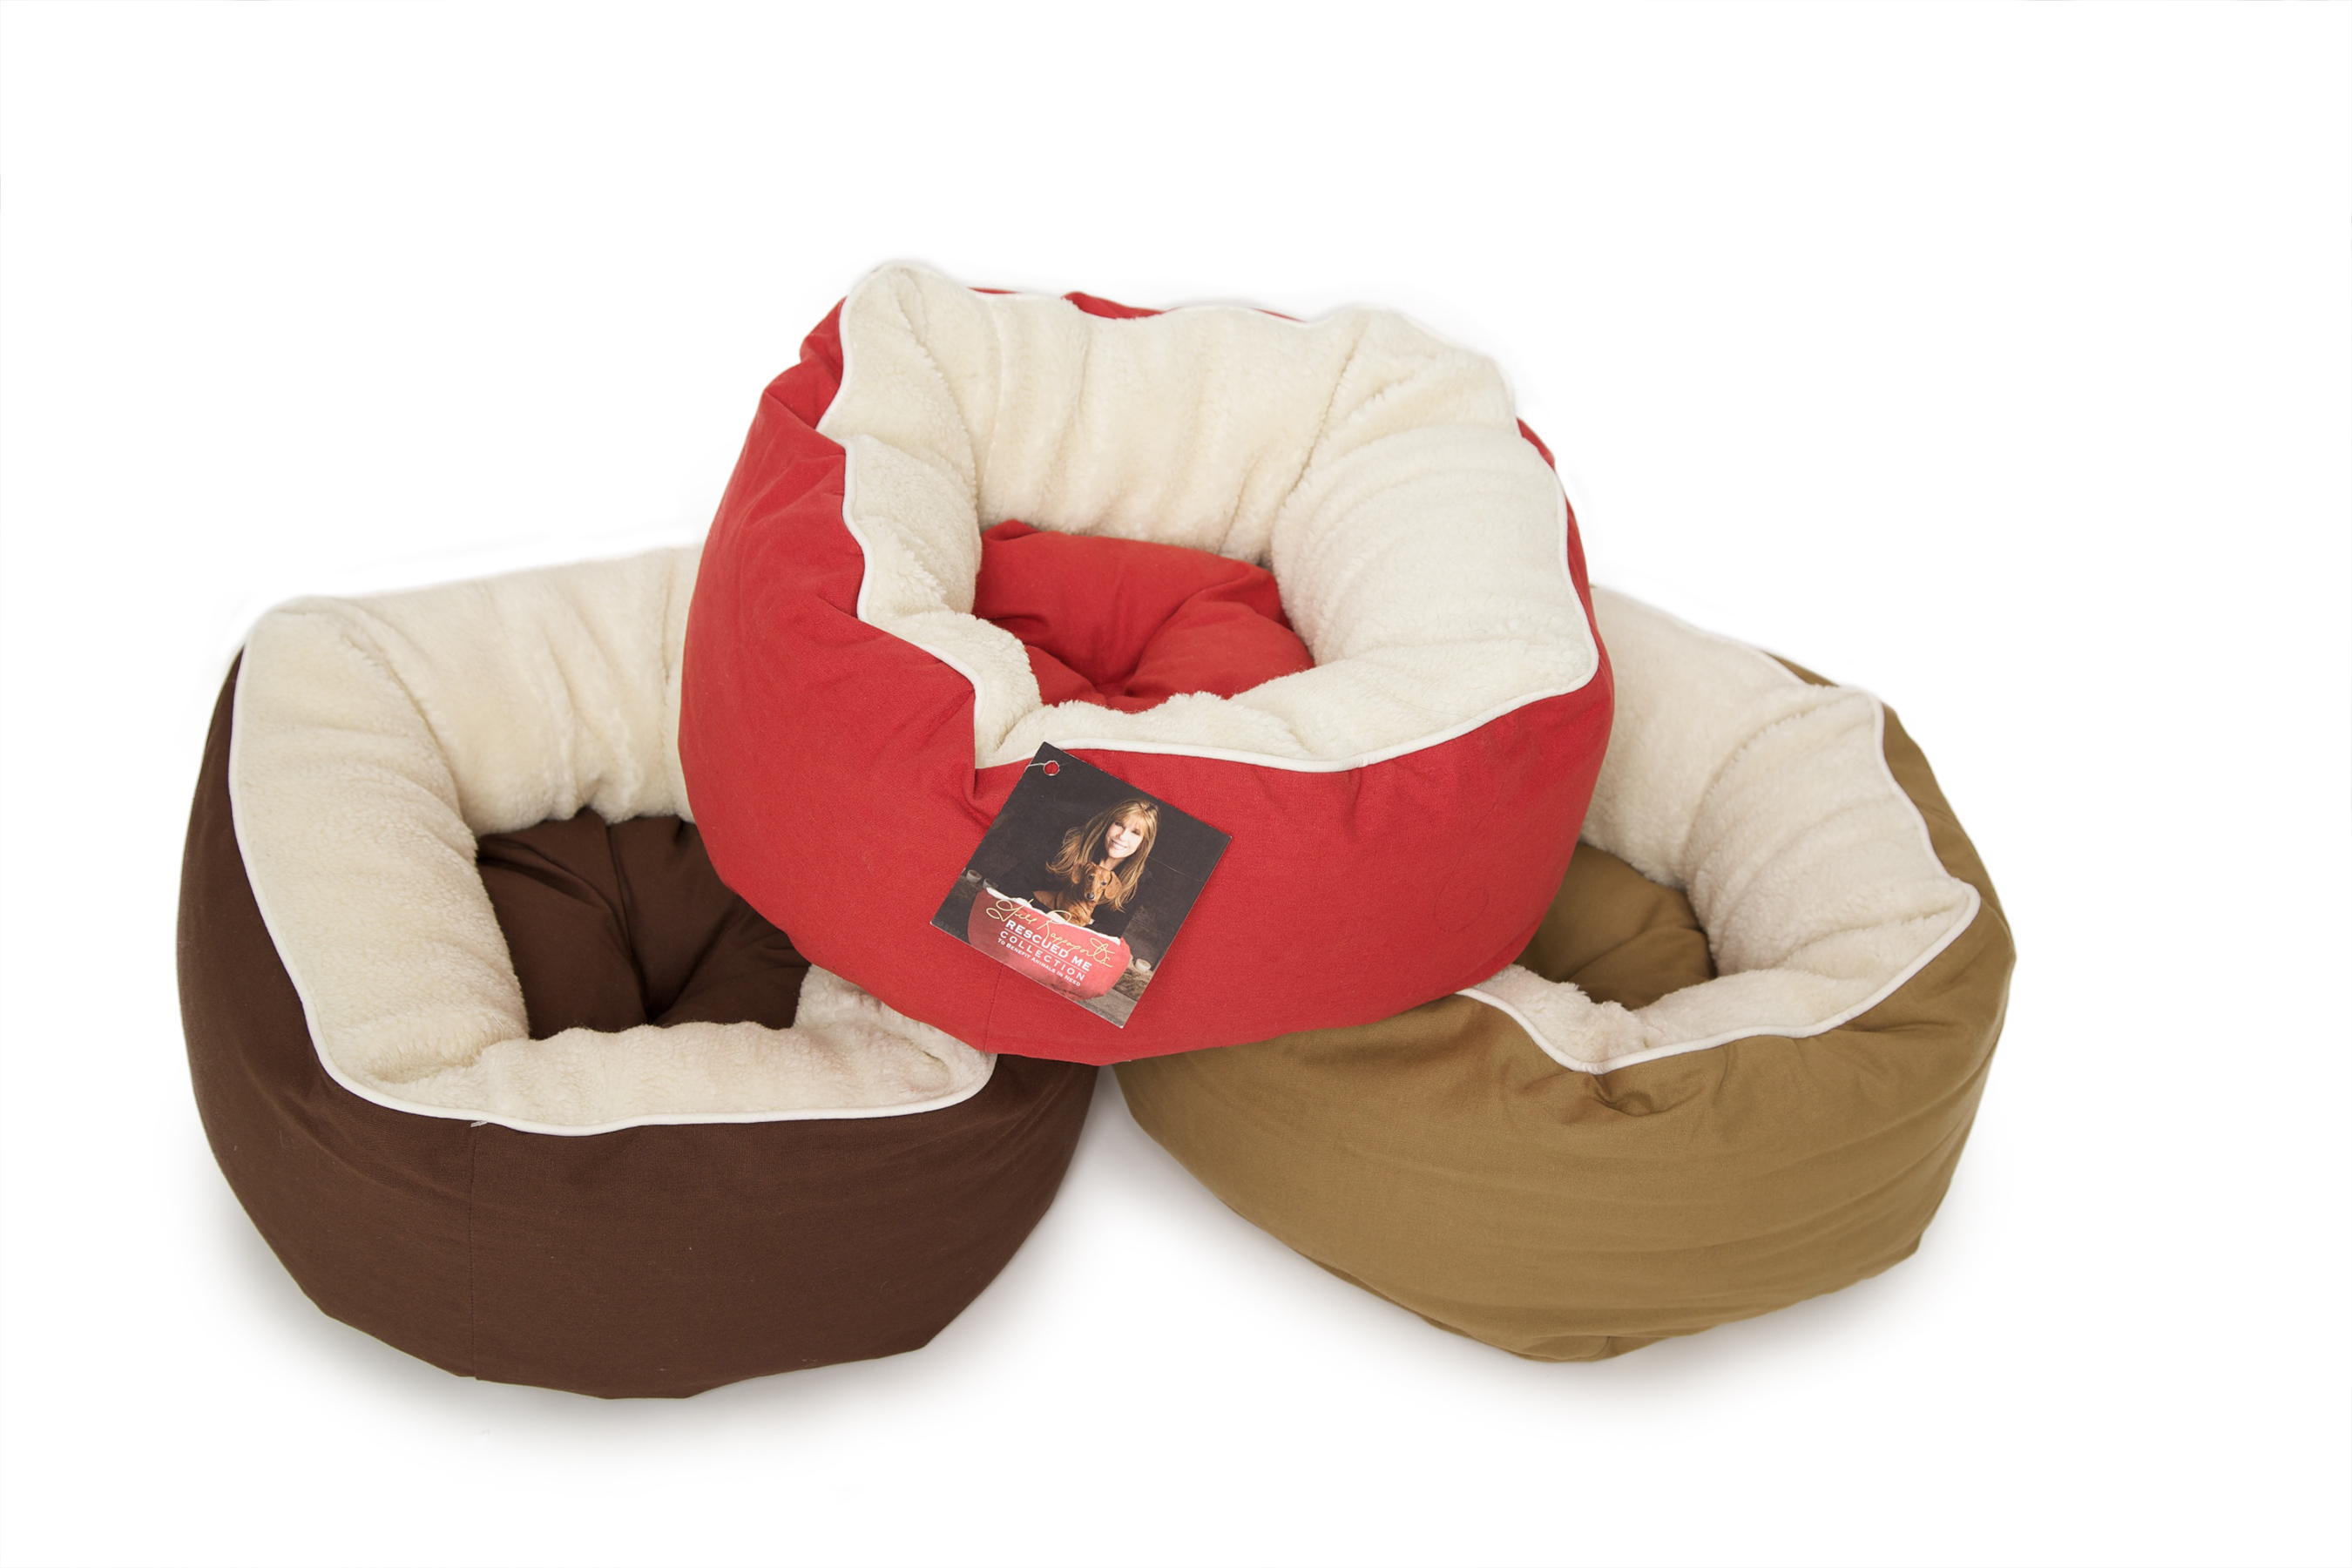 Cat Cuddler - the perfect modern bed for your cat